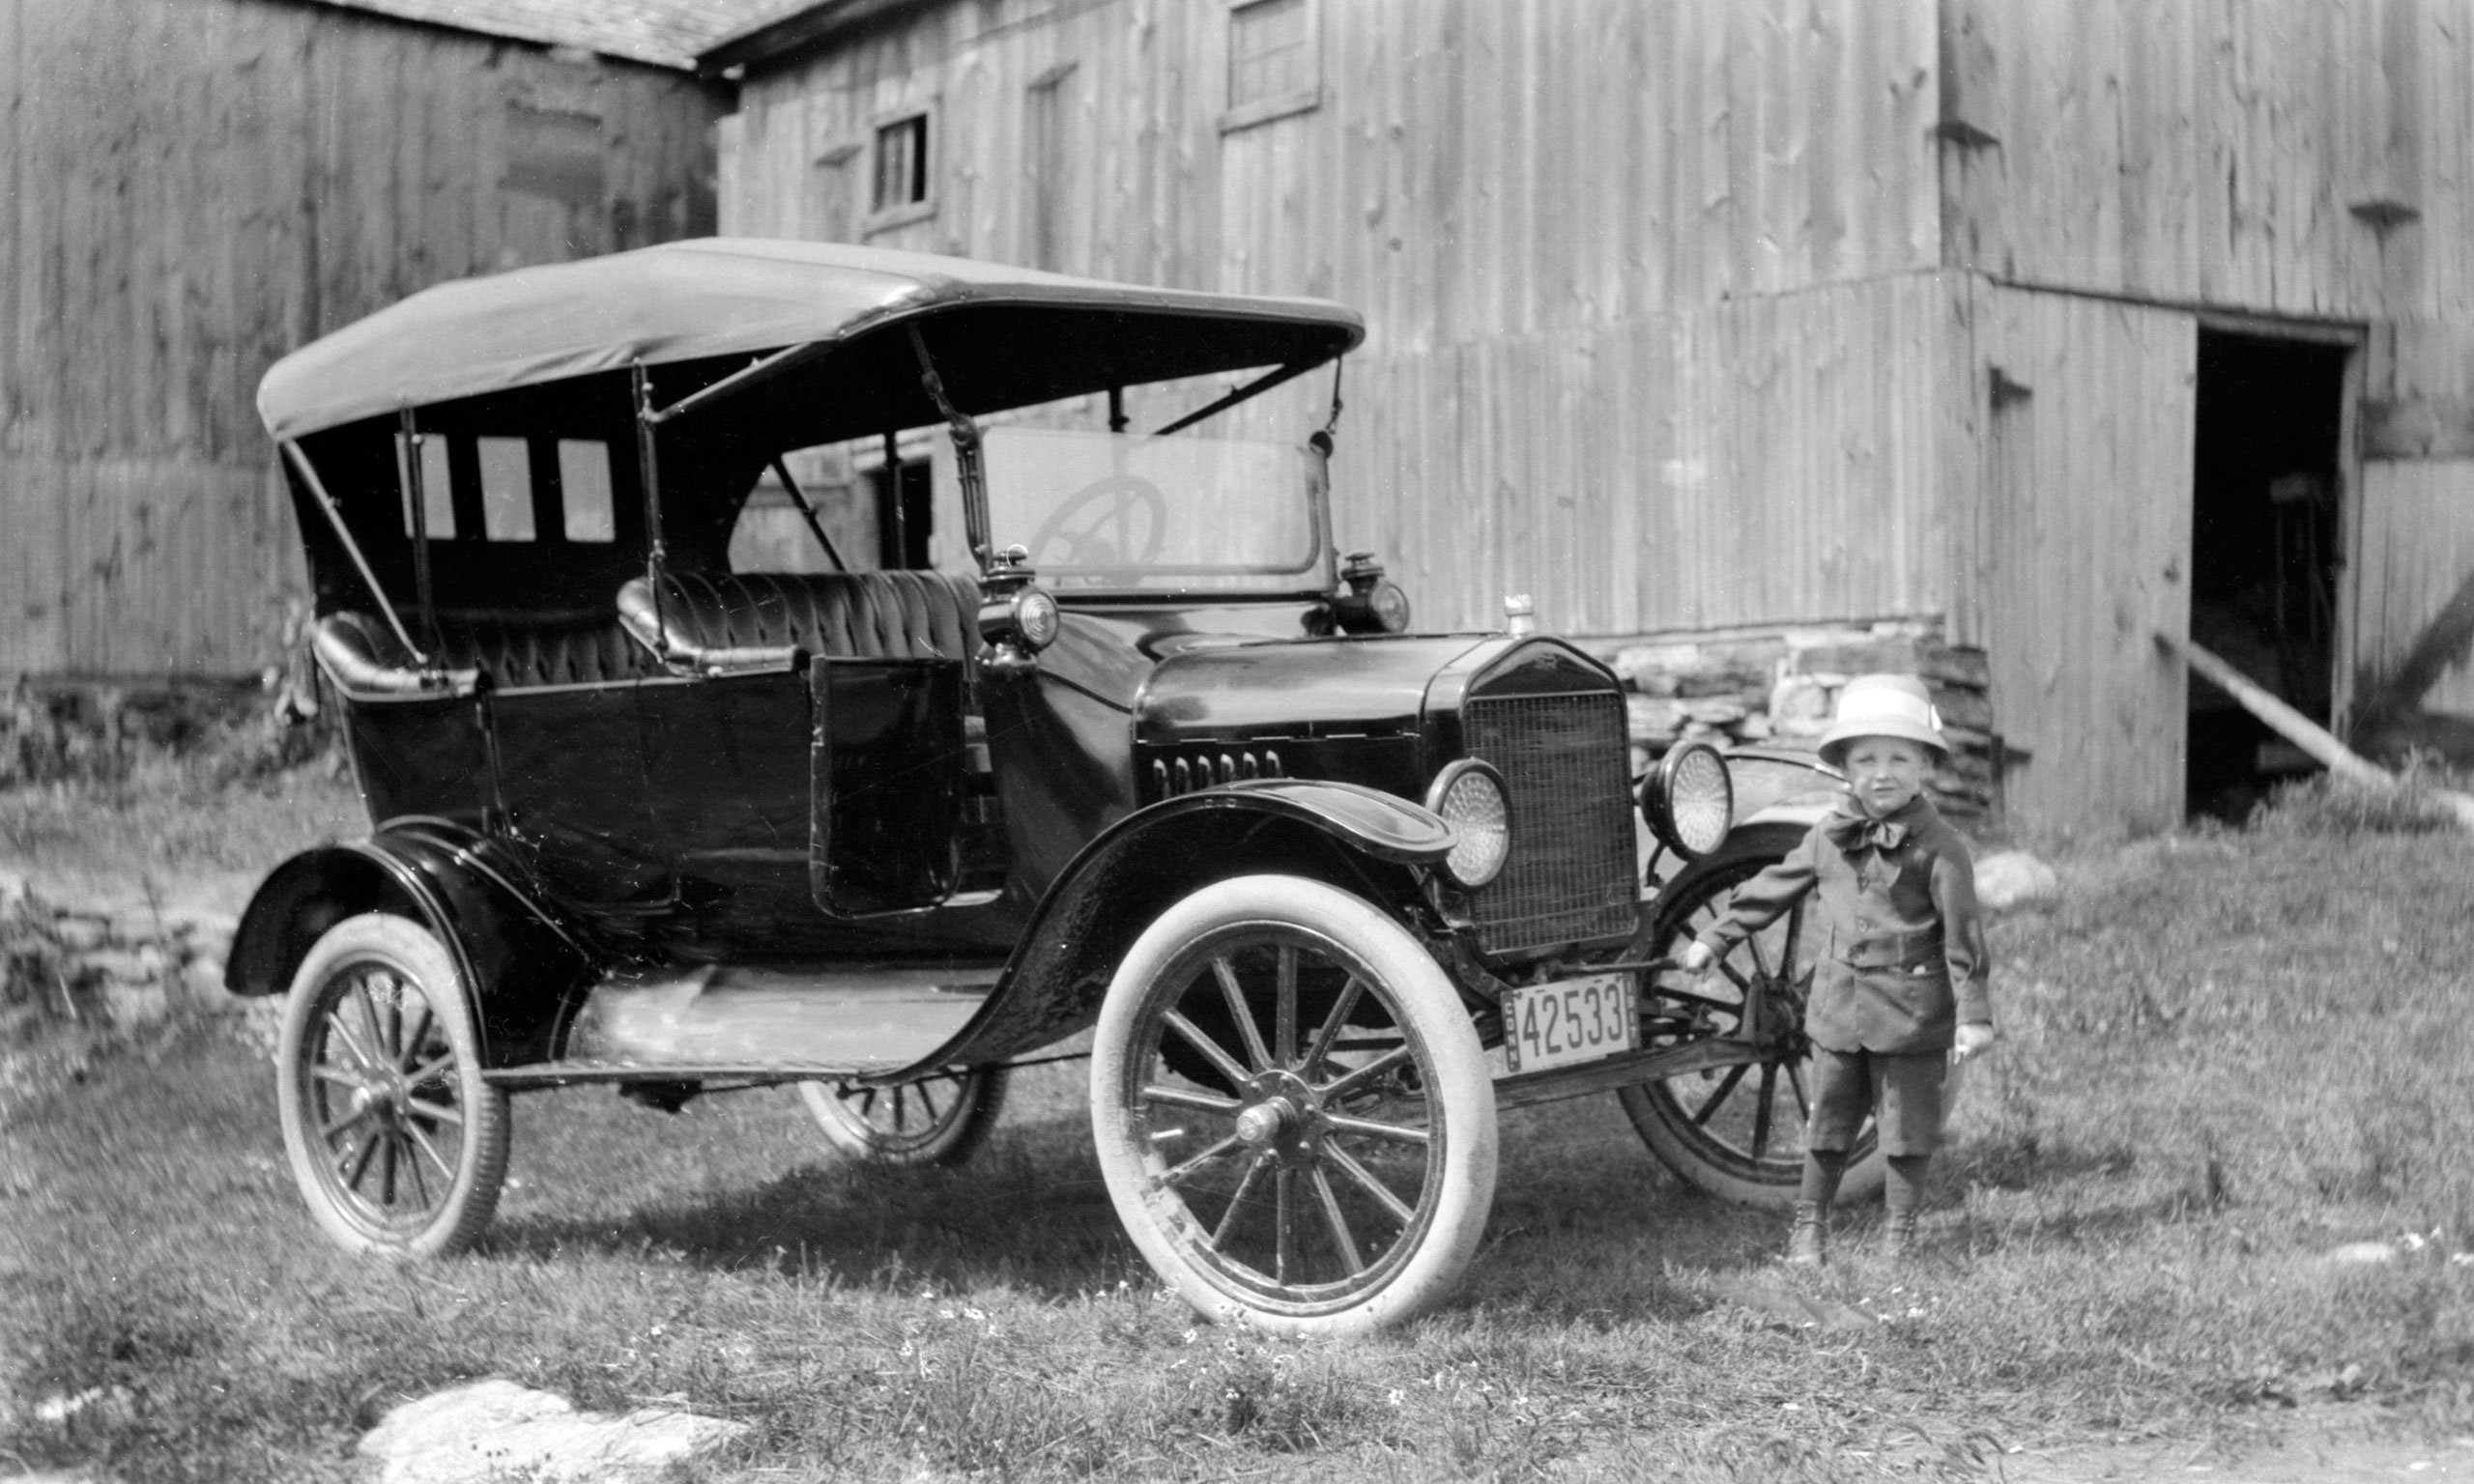 Ford Model T Photos: See Vintage Images of the Classic Car | Time.com